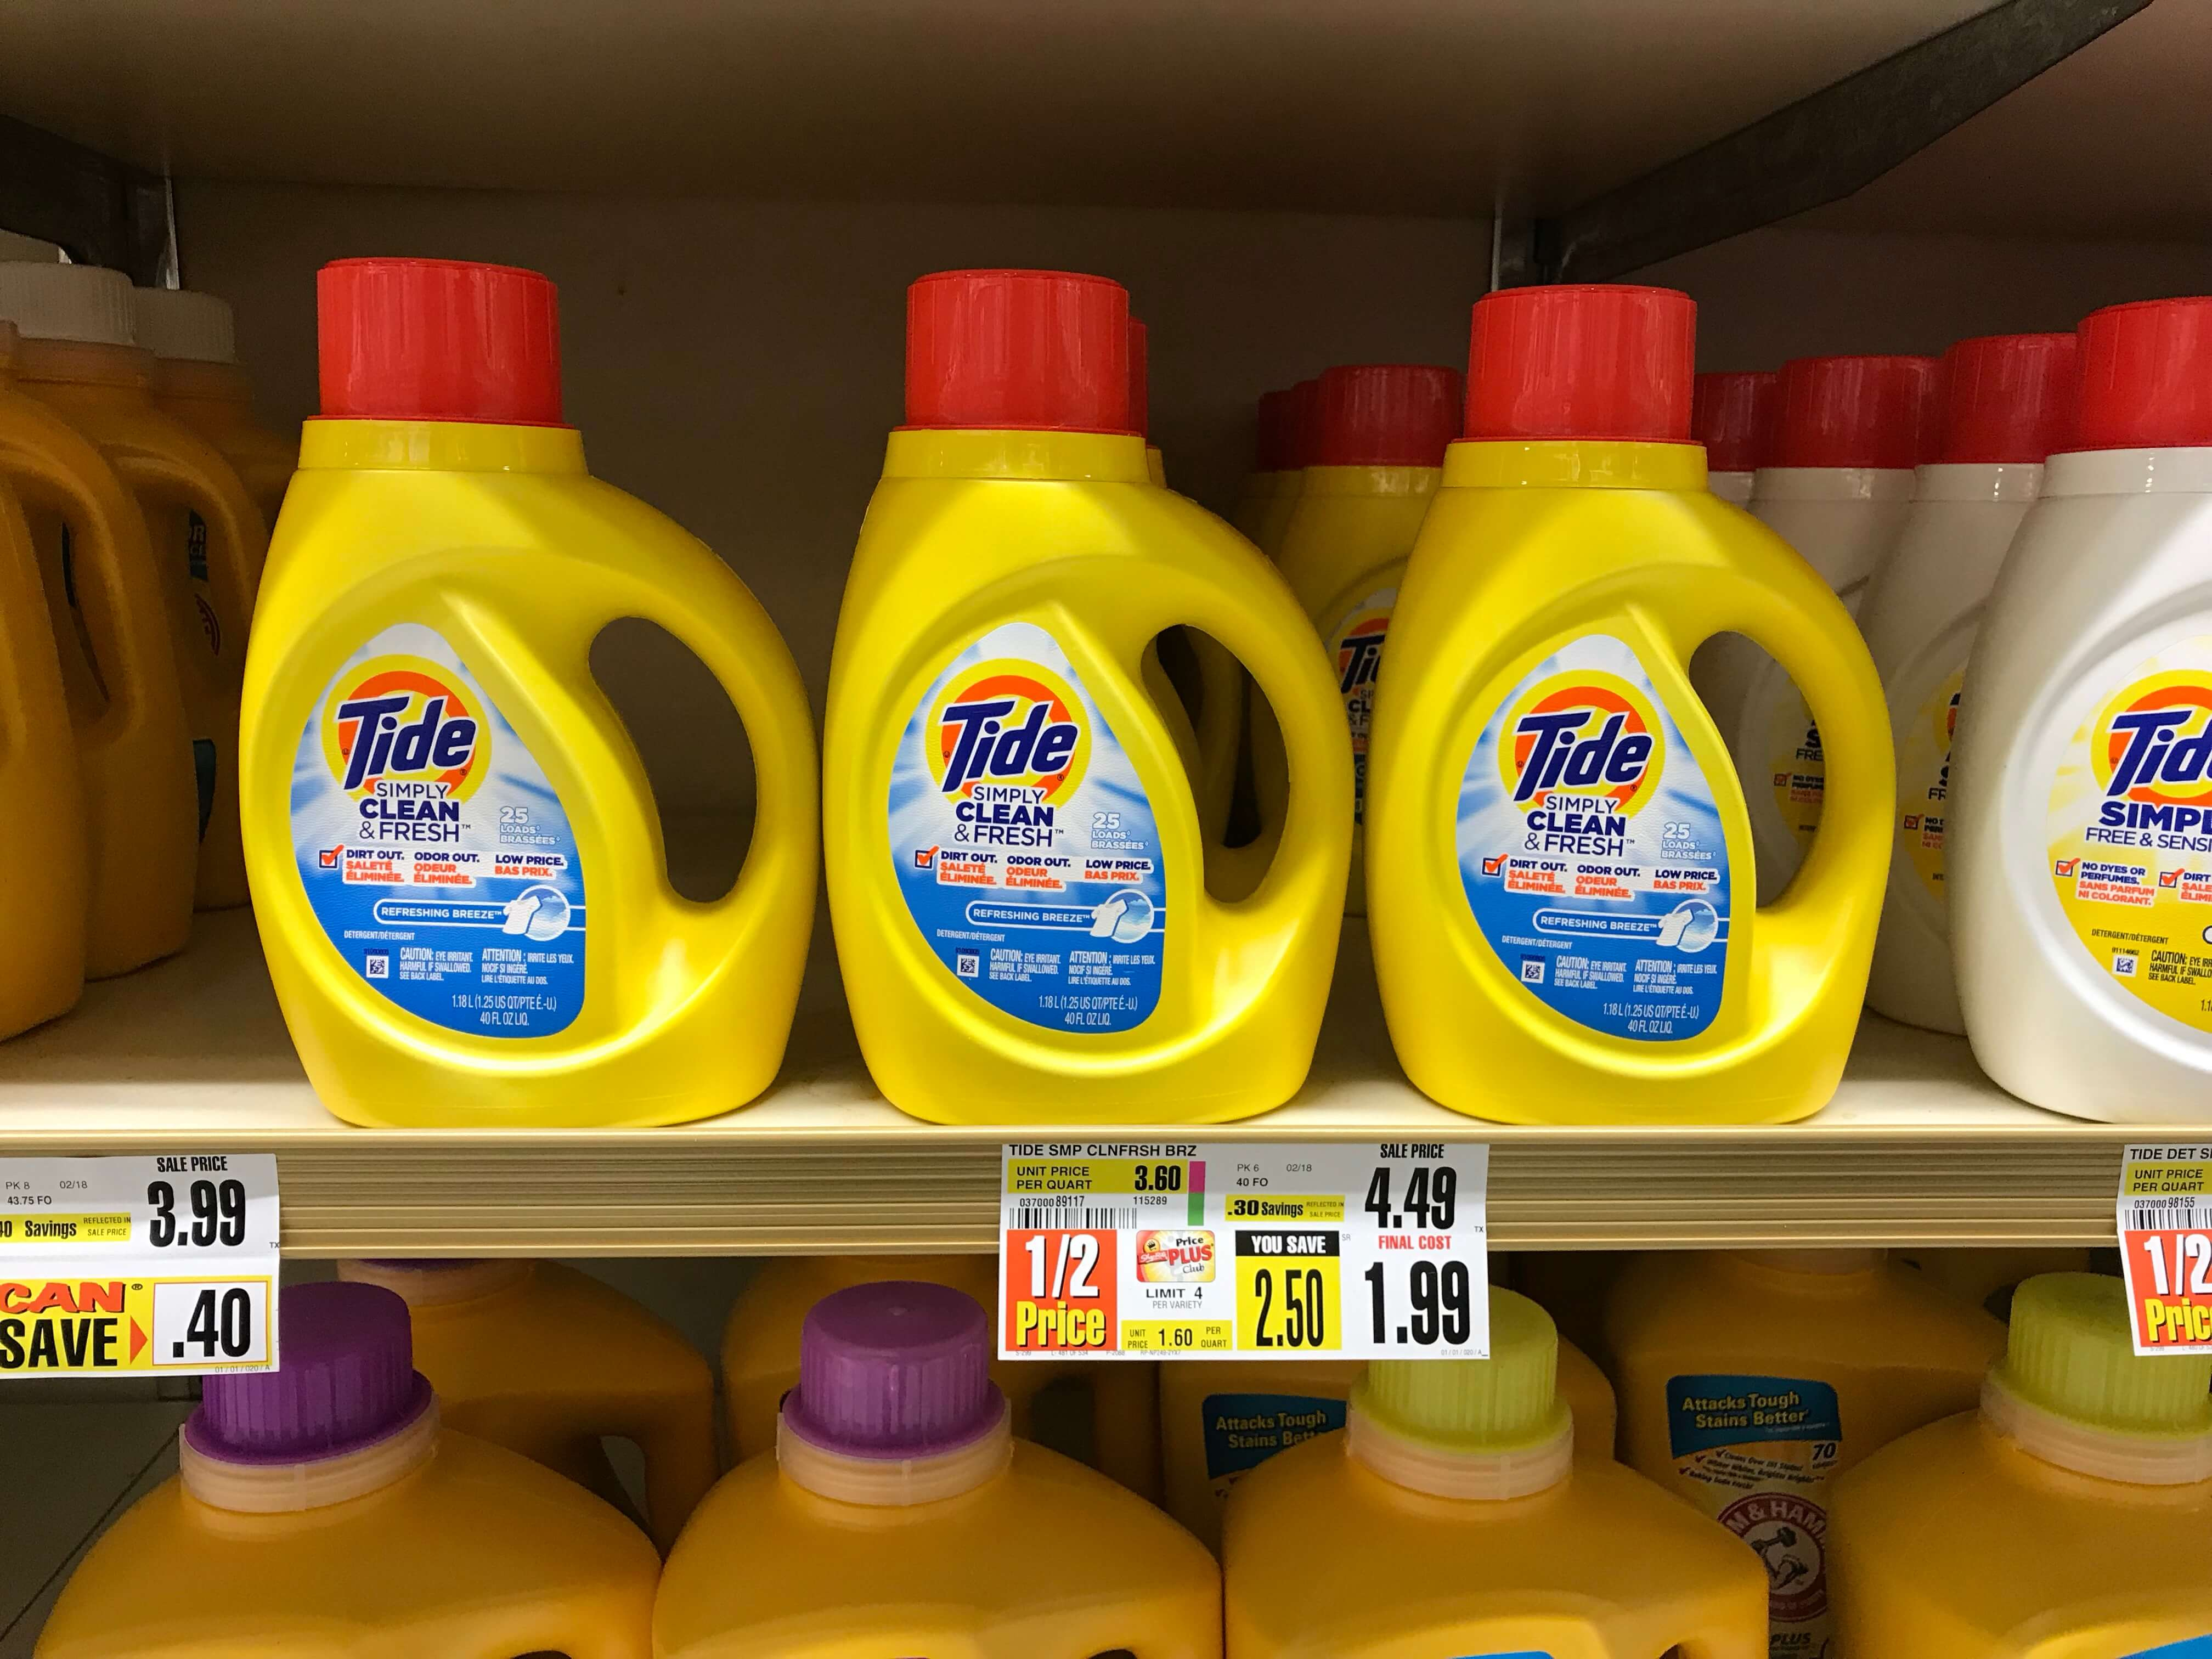 Tide Simply Laundry Detergent Just $0.99 At Shoprite! {4/22}Living - Tide Coupons Free Printable